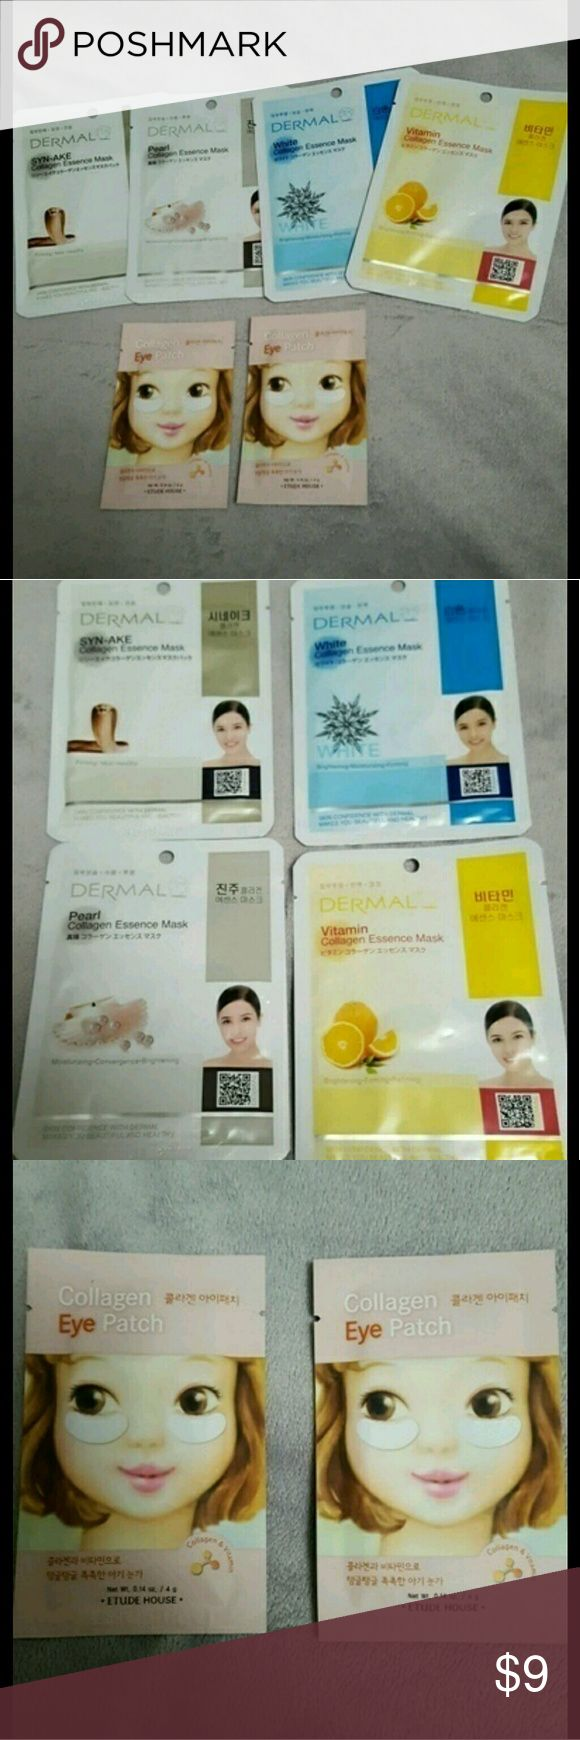 Korean sheet mask variety bundle! All sheet masks are new and ready to ship! Korean beauty products either have the manufacturing or expiration date stamped on the item. The Etude House eye patch exp 12/2017.The Dermal brand has the manufacturing date (02/2015) Expiration on this brand is 3 years from date, so you can use this until 02/2018  Bundle includes: ?2 Etude House Collagen Eye Patch ?1 Dermal Syn-ake Collagen x1 Dermal Vitamin Collagen  ?1 Dermal White Collagen ?1 Dermal Pearl…